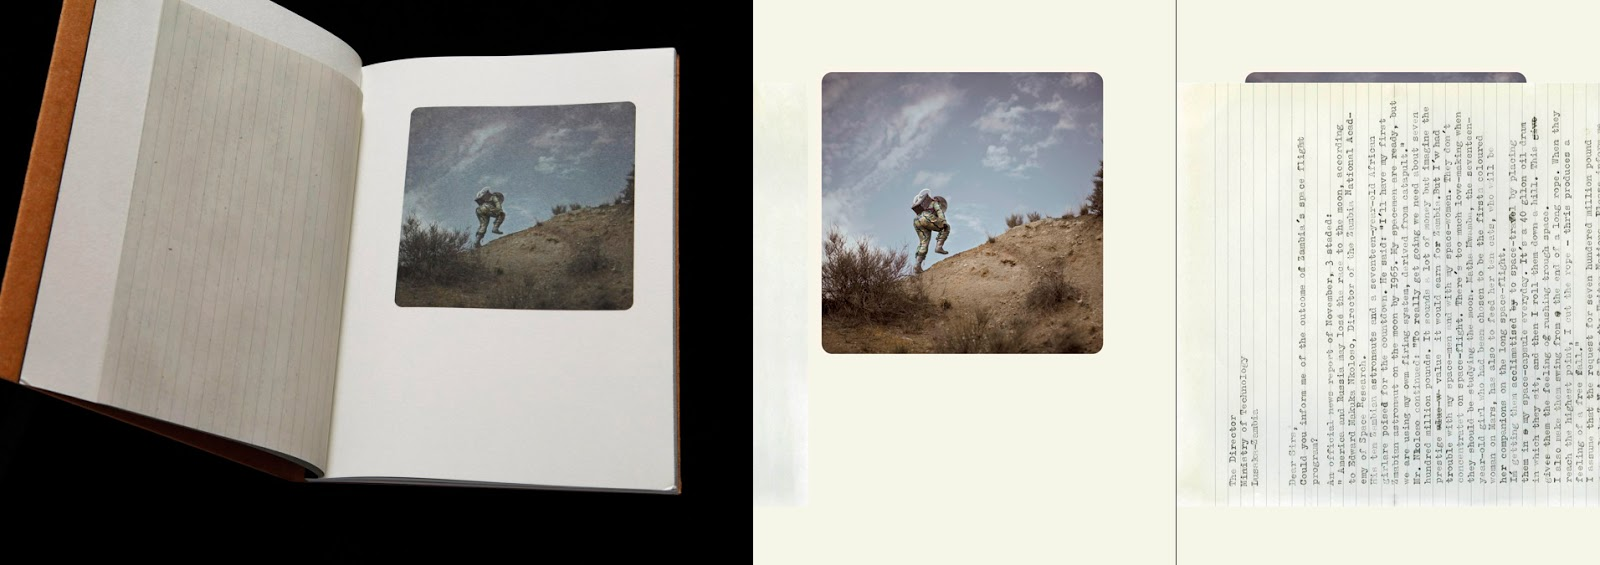 The digital photobook the afronauts by cristina de middel the app will be compatible with both ipad and iphone and will launch on april 17th costing 599 jeuxipadfo Images